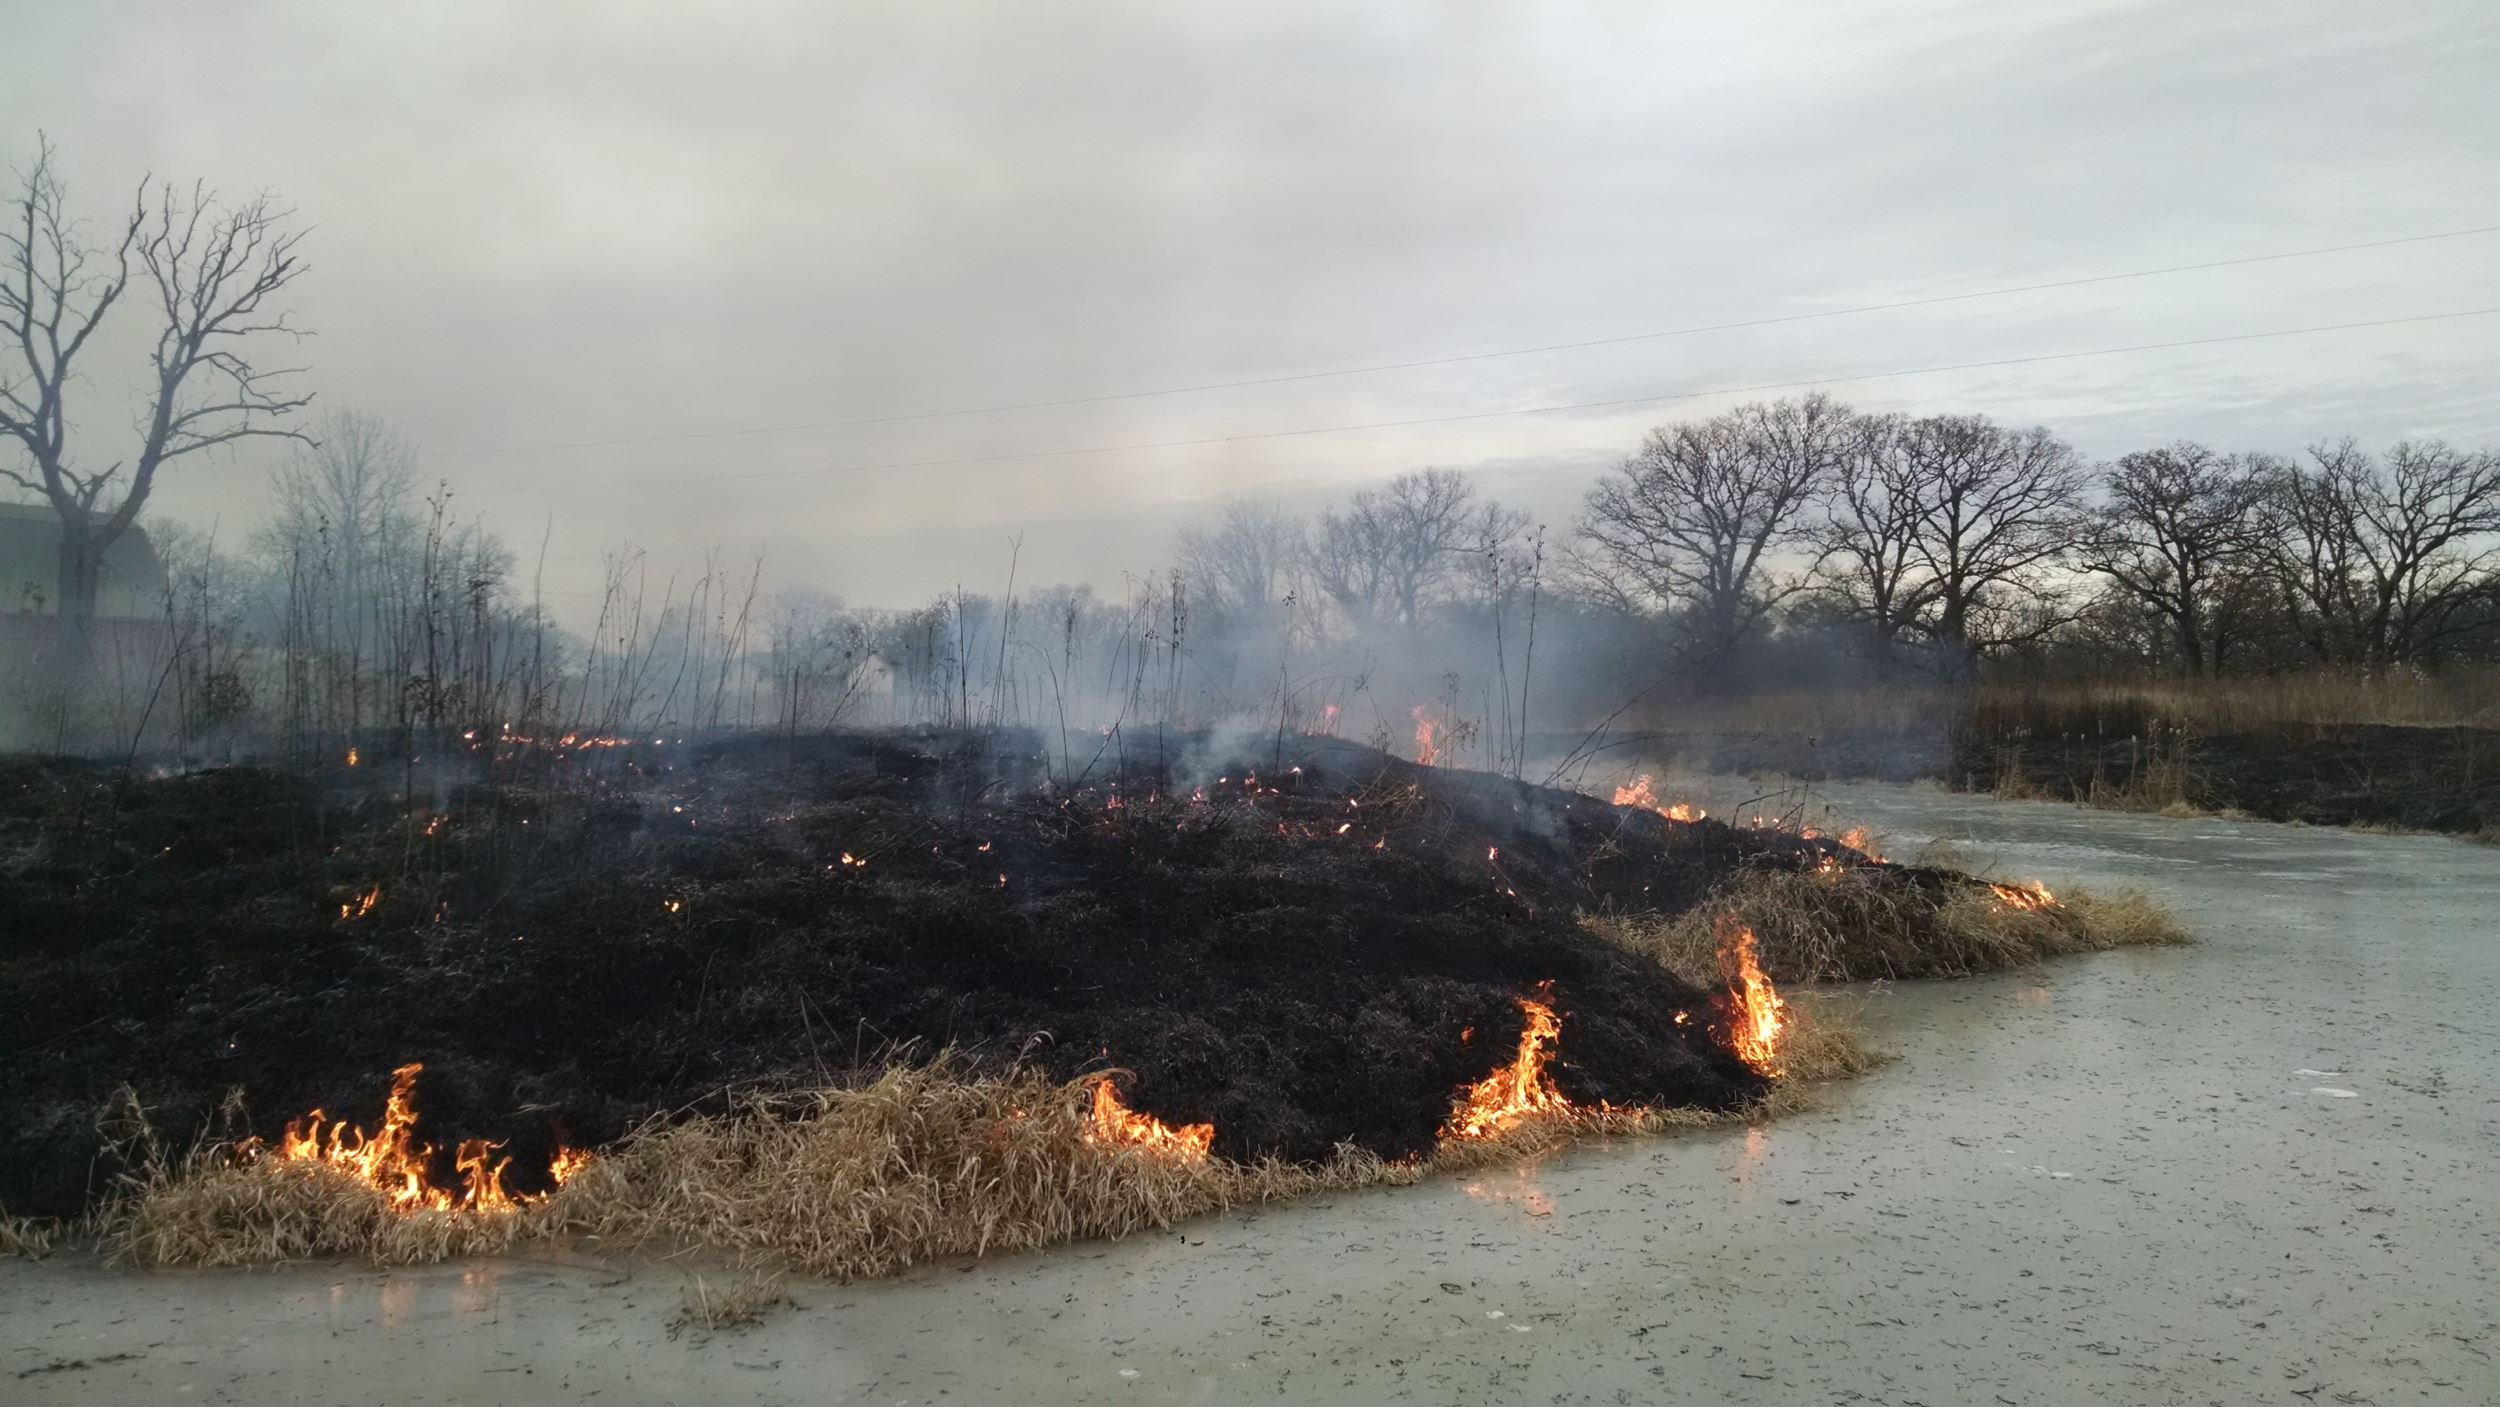 Prescribed fire in the winter?